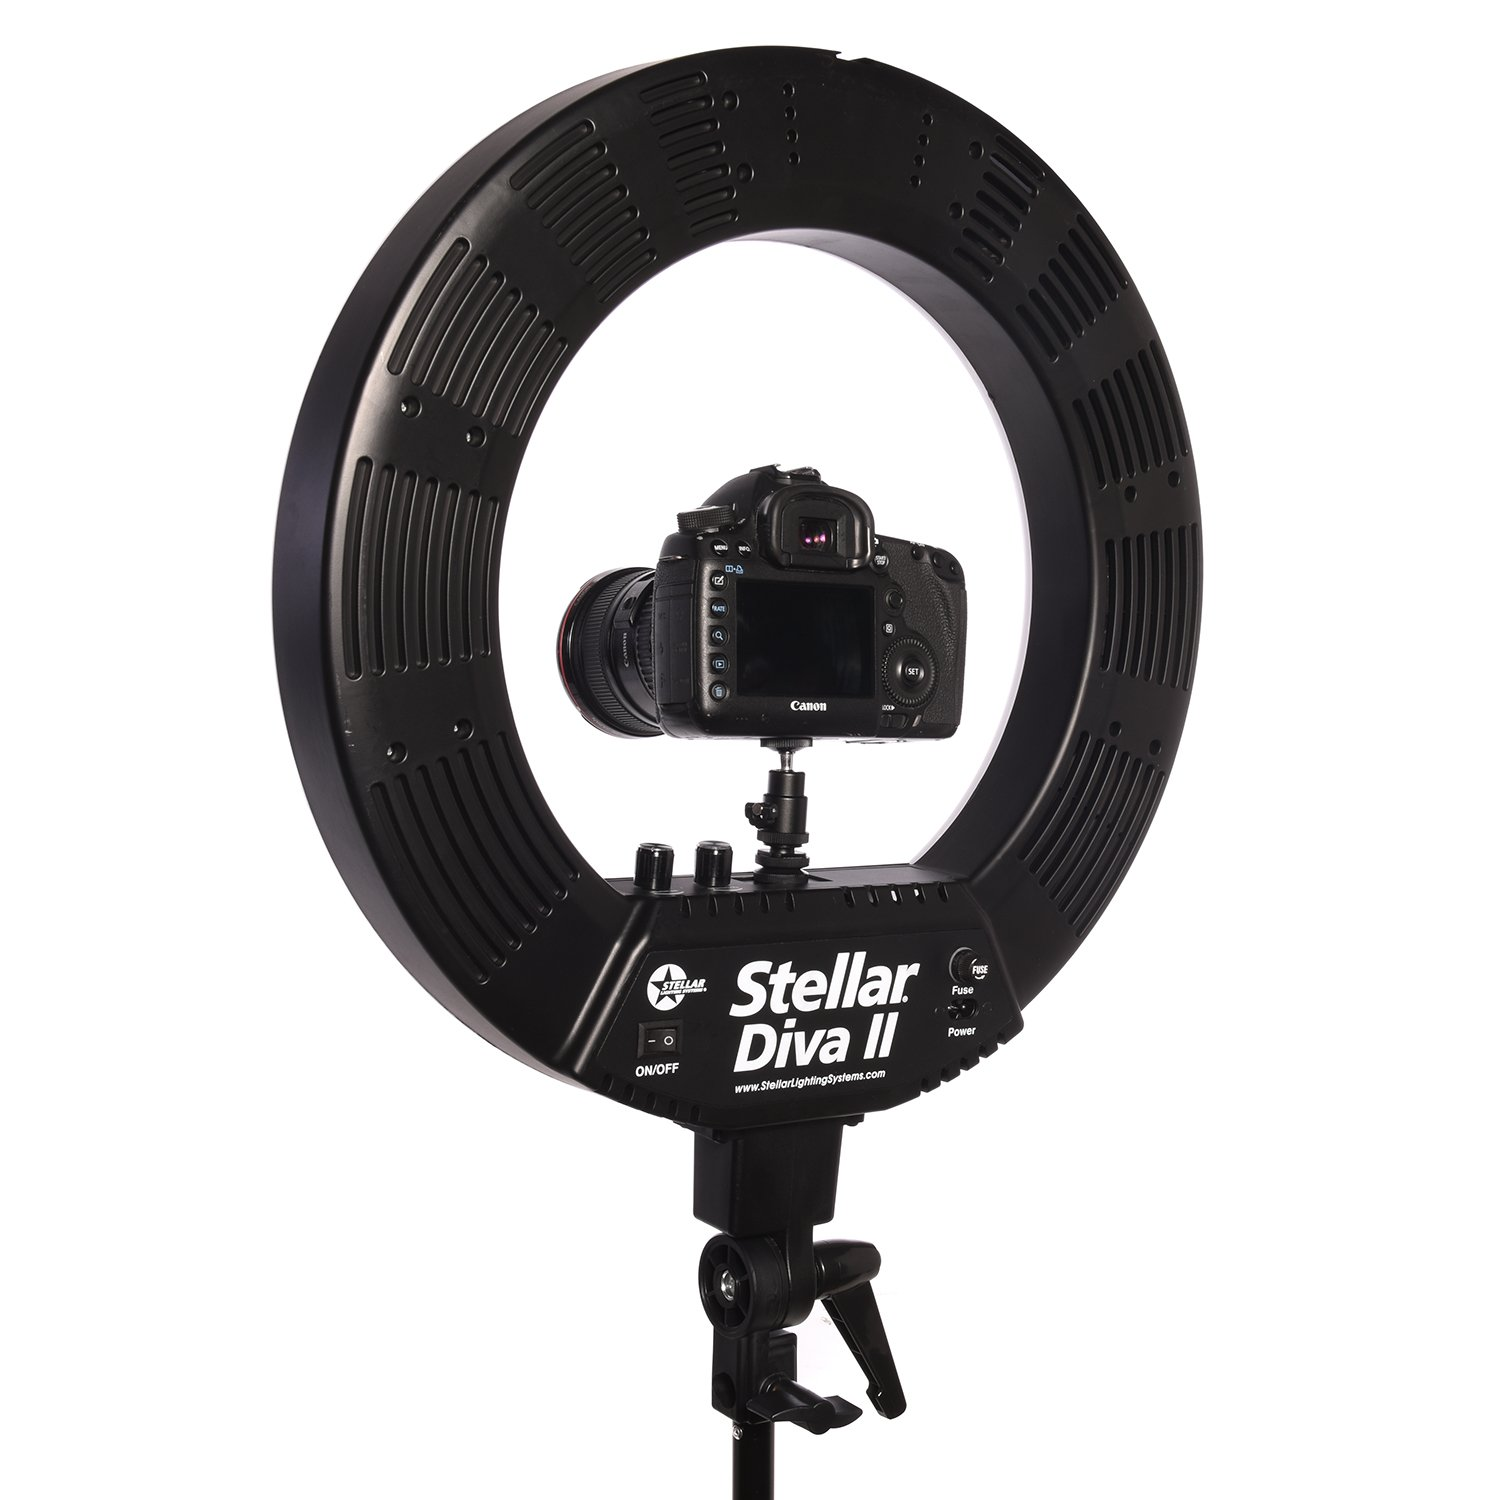 Stellar 18'' LED Diva II Ring Light (Black) w/Wireless Bluetooth Camera Shutter Remote Control for IOS & Android Phones and Universal Smartphone Tripod Mount & Adapter For Most Smartphones by Calumet (Image #3)